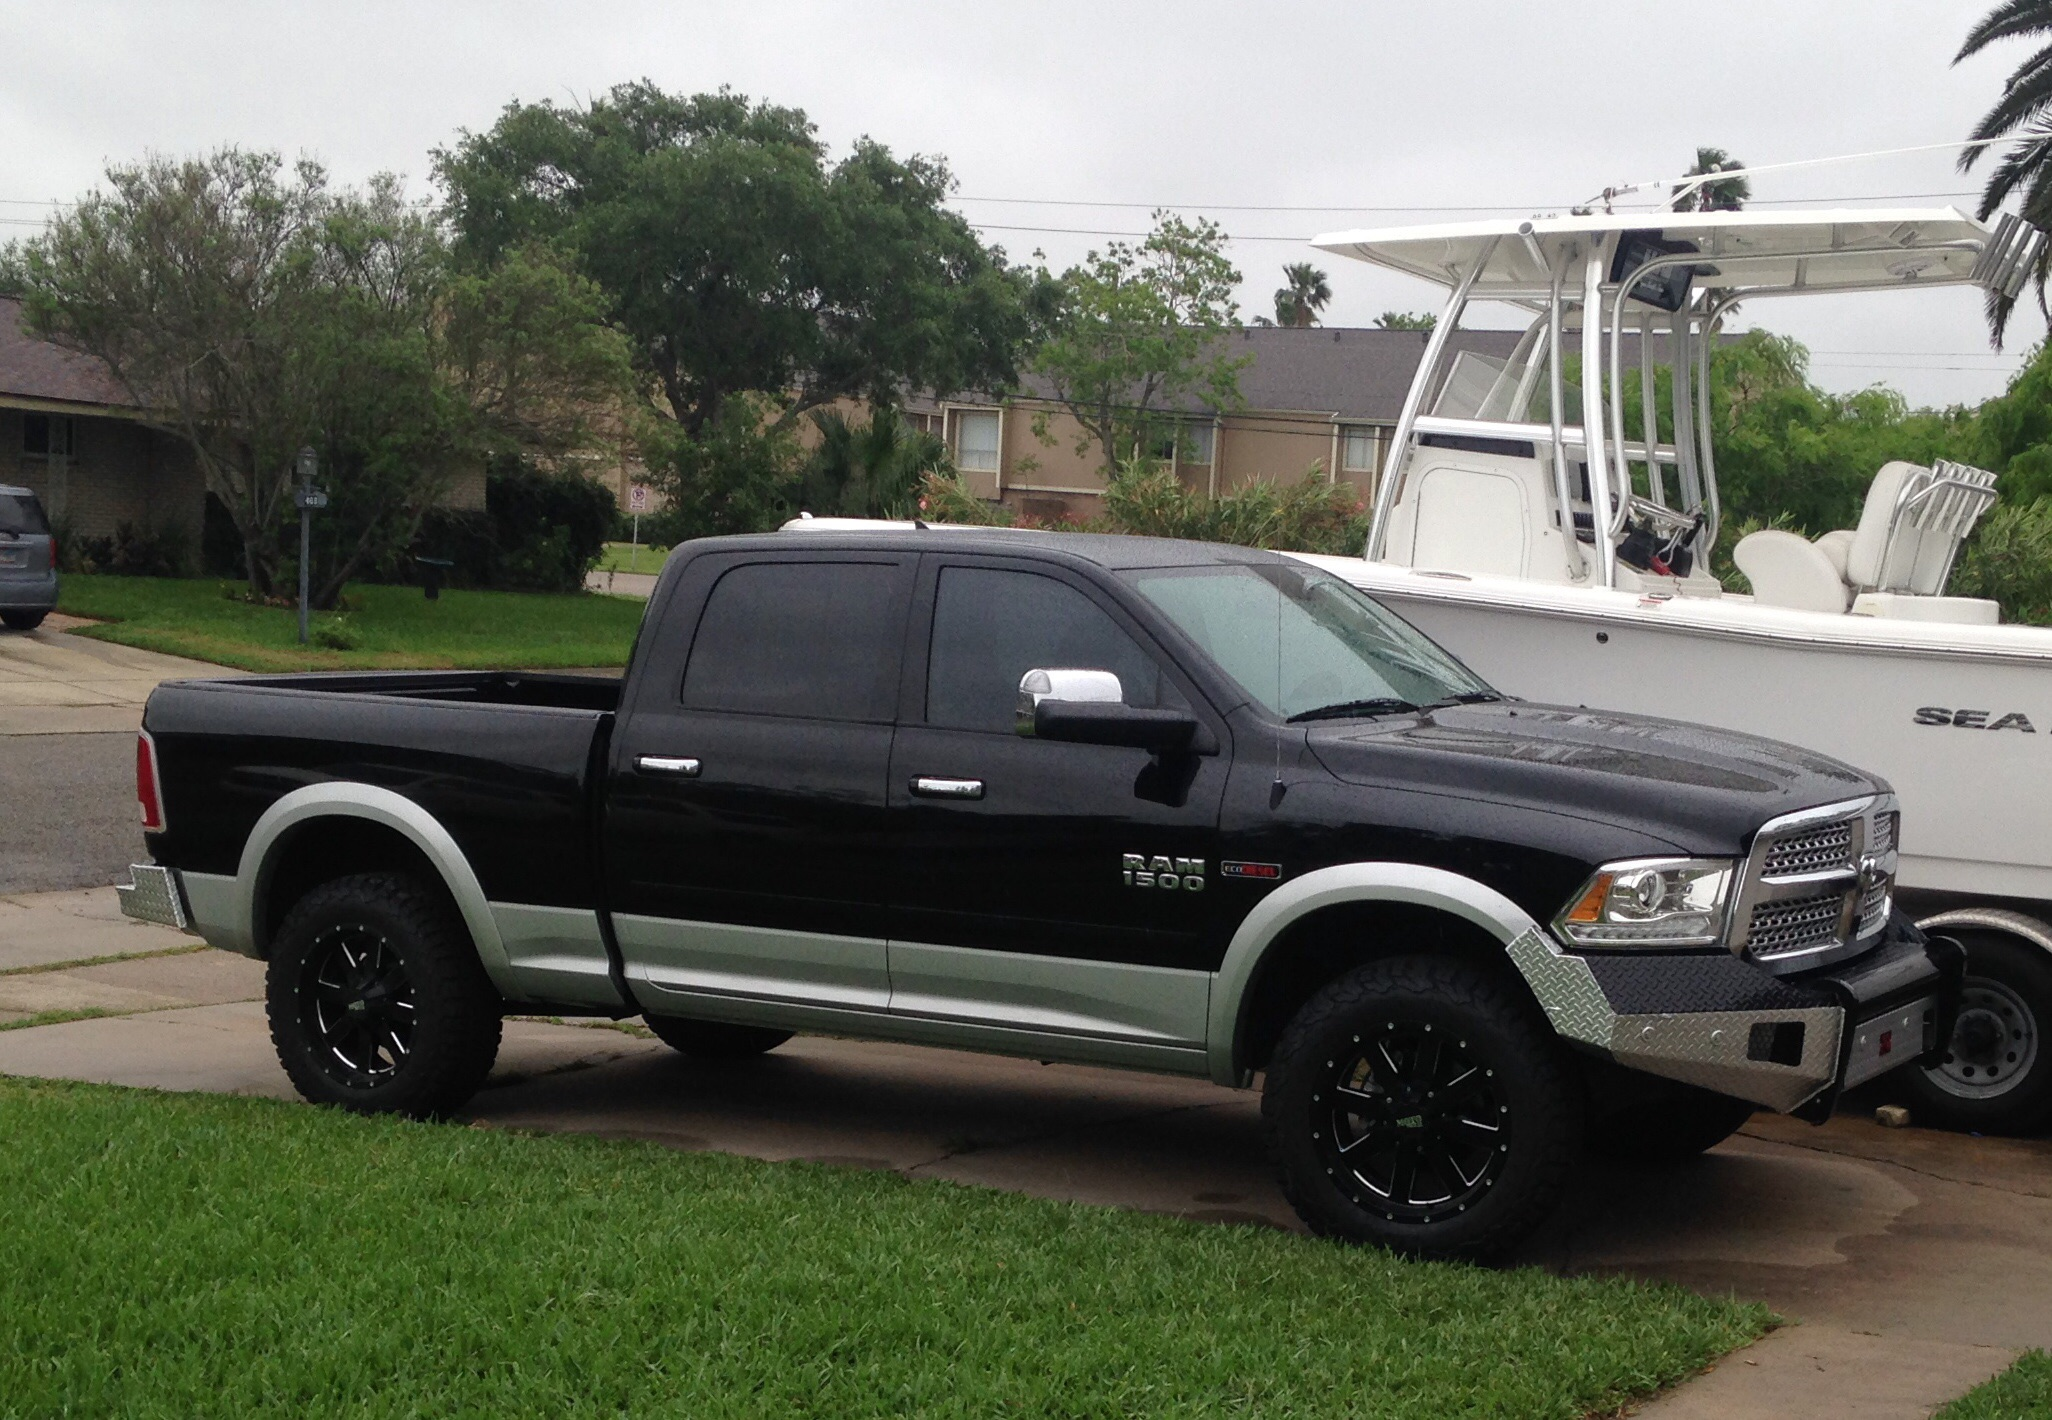 Maxresdefault in addition D Bs Build Image further Dodge Resi Mnts T besides Rcd further Dp Bcummins Lift Pump Upgrade Brelay. on 2007 dodge 1500 10 lift